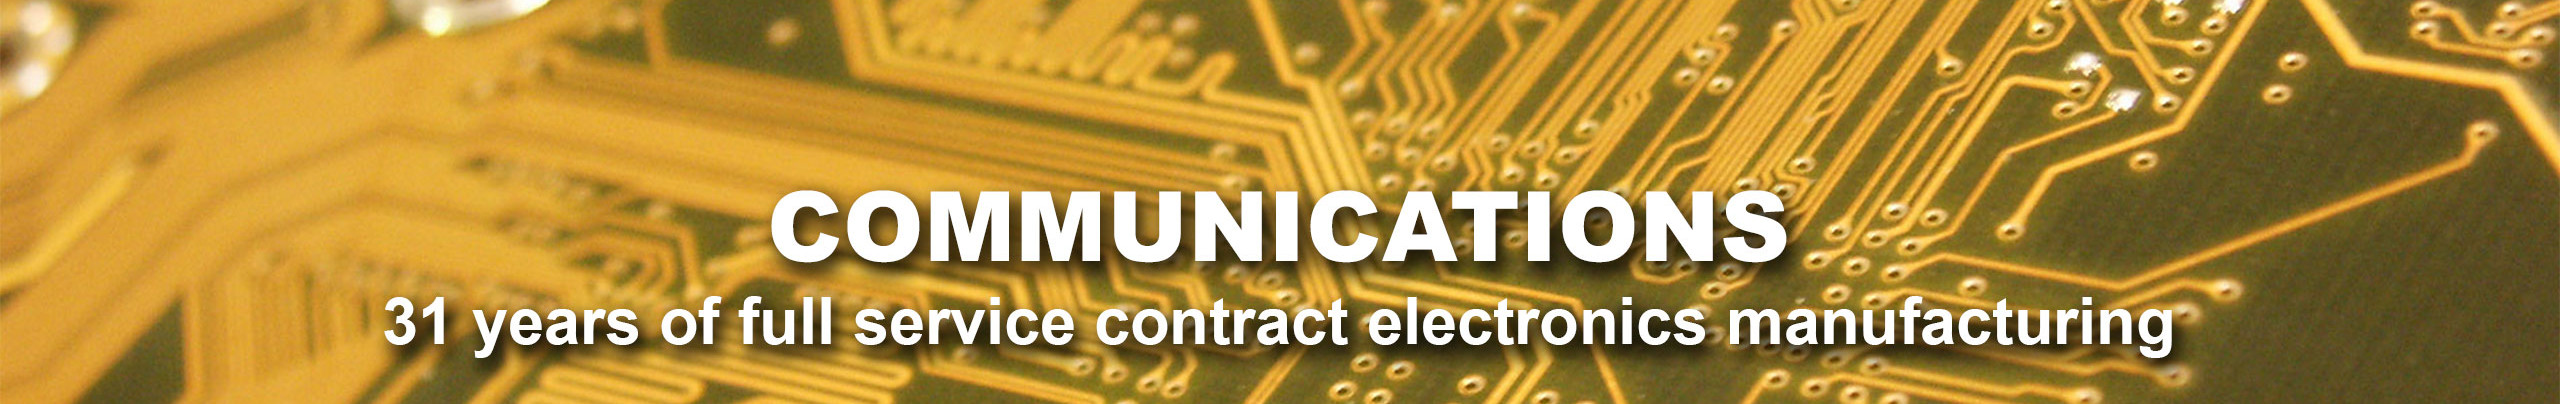 COMMUNICATIONS - UEI serves data communication and other telecom products with 30 years of contract electronics manufacturing.